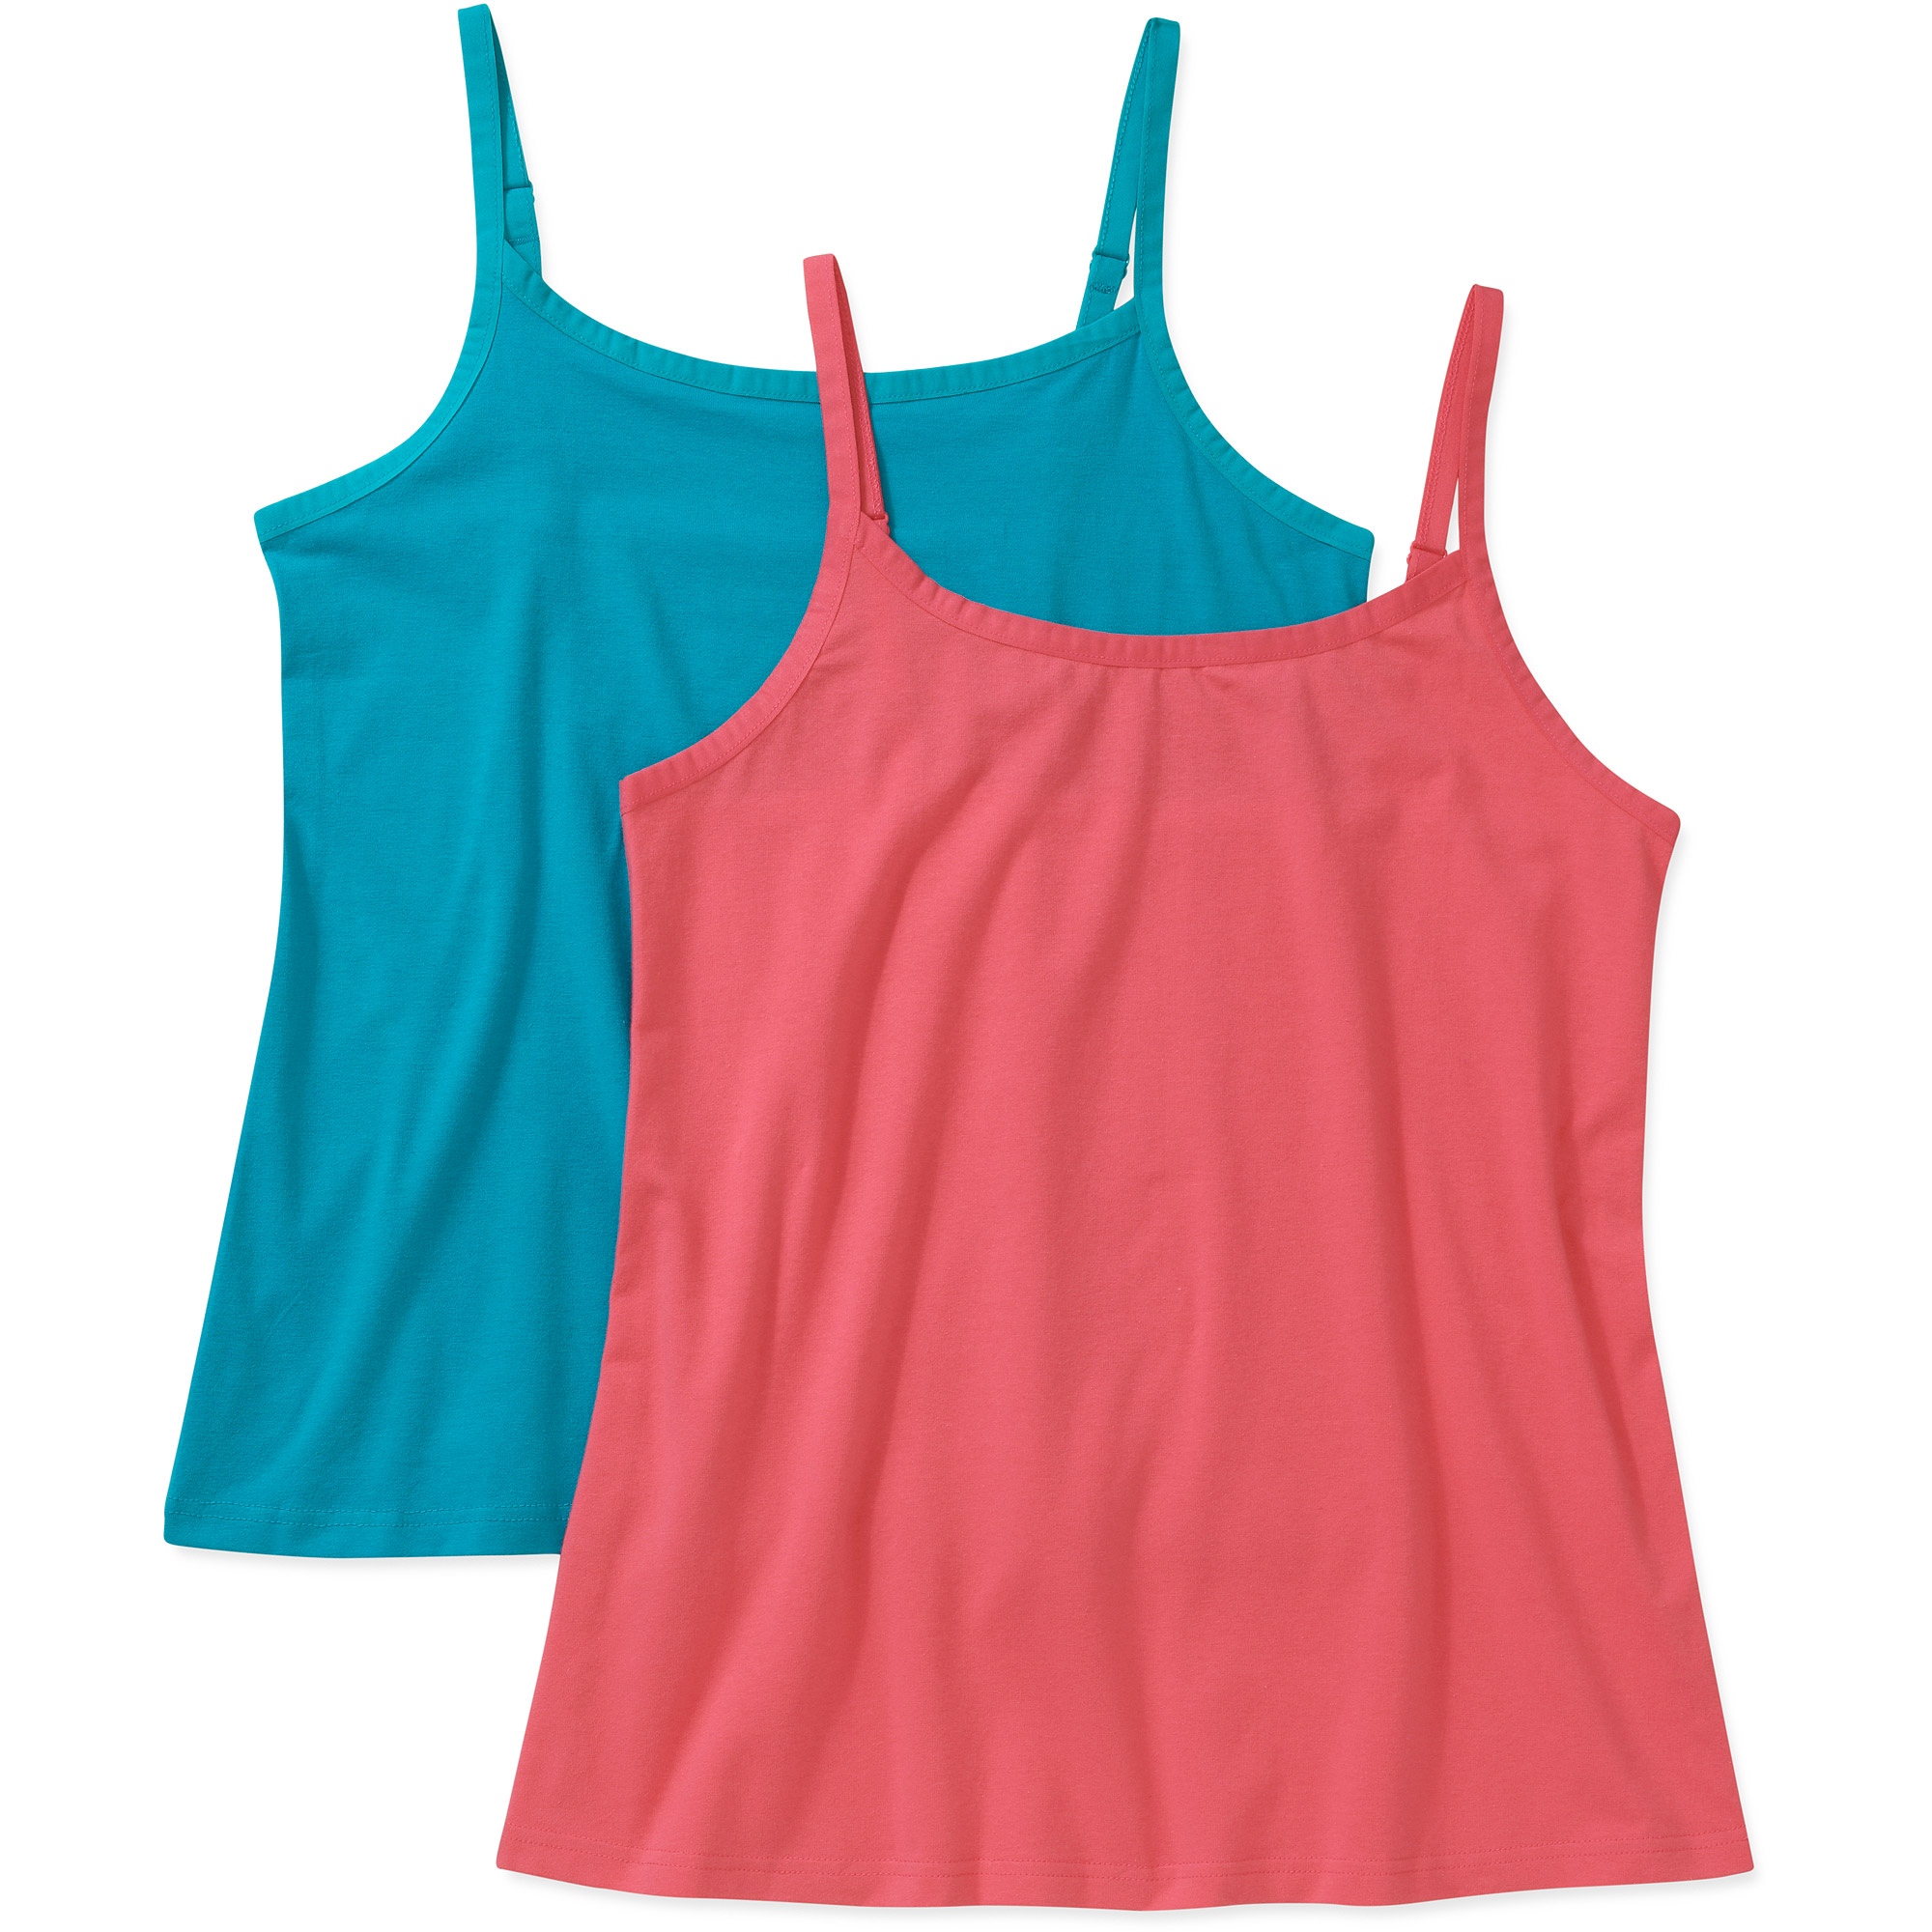 Faded Glory Women's Plus-Size Basic Camisole 2-pack